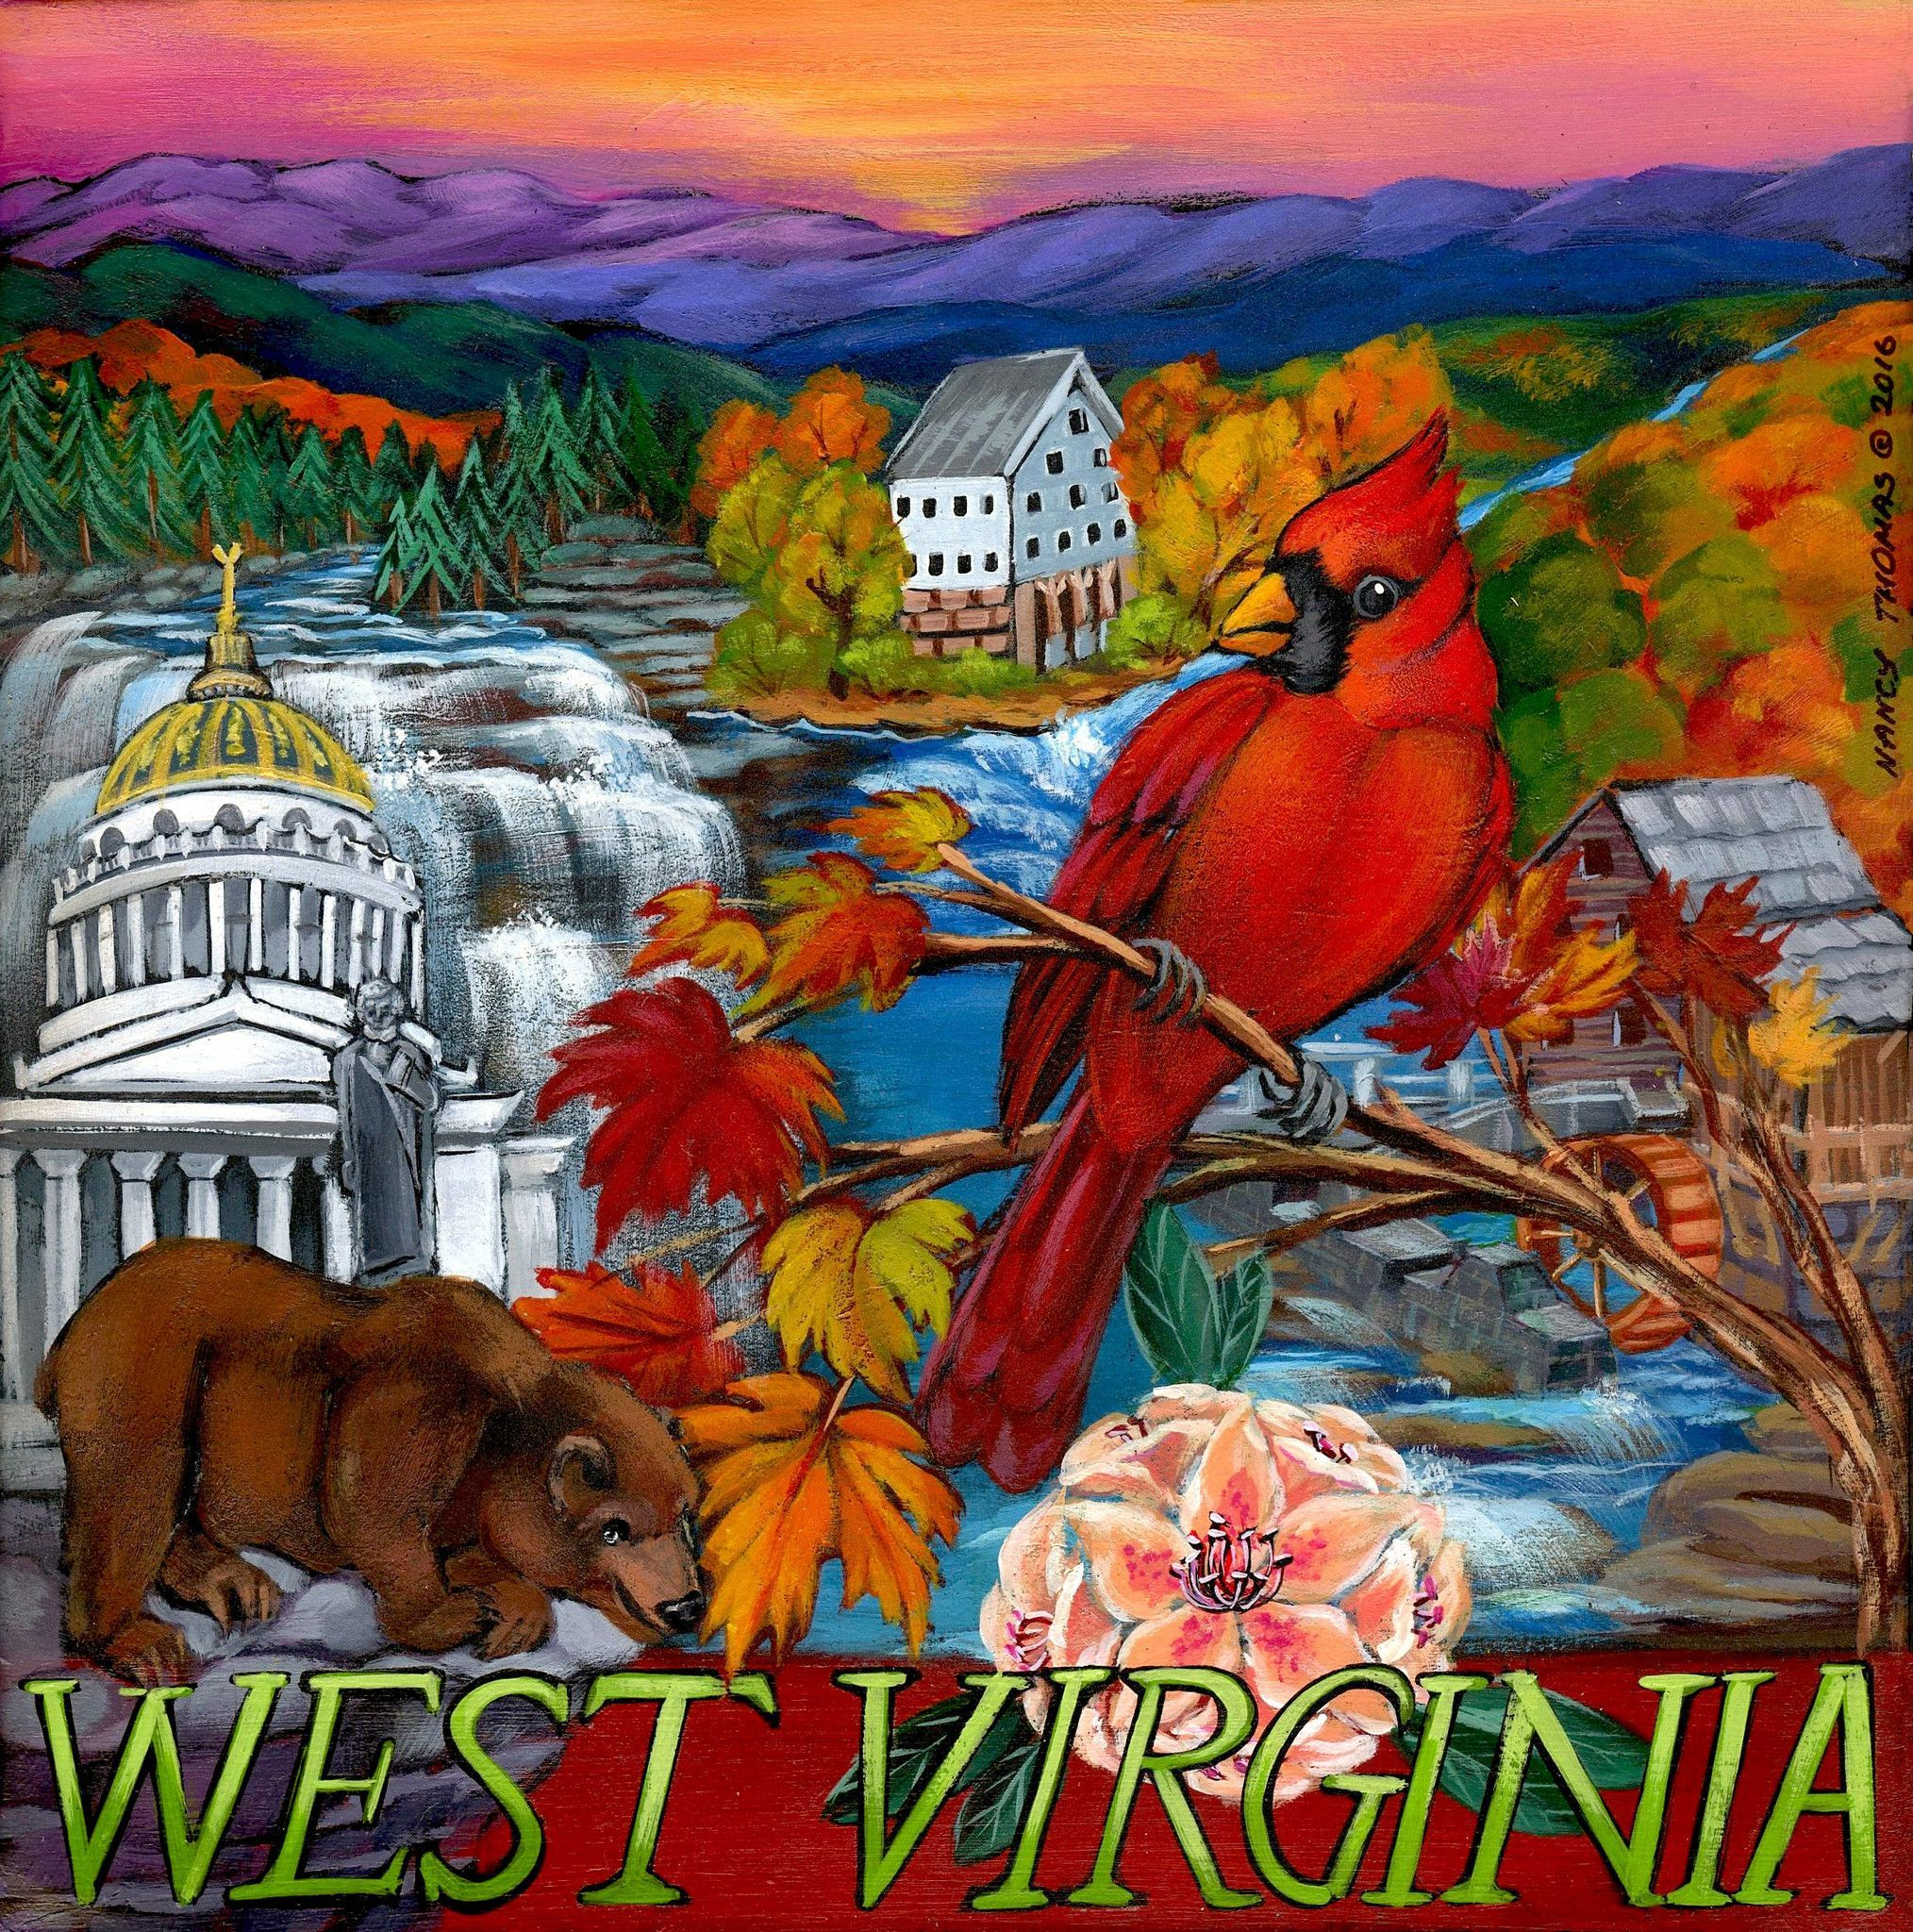 West Virginia With Images